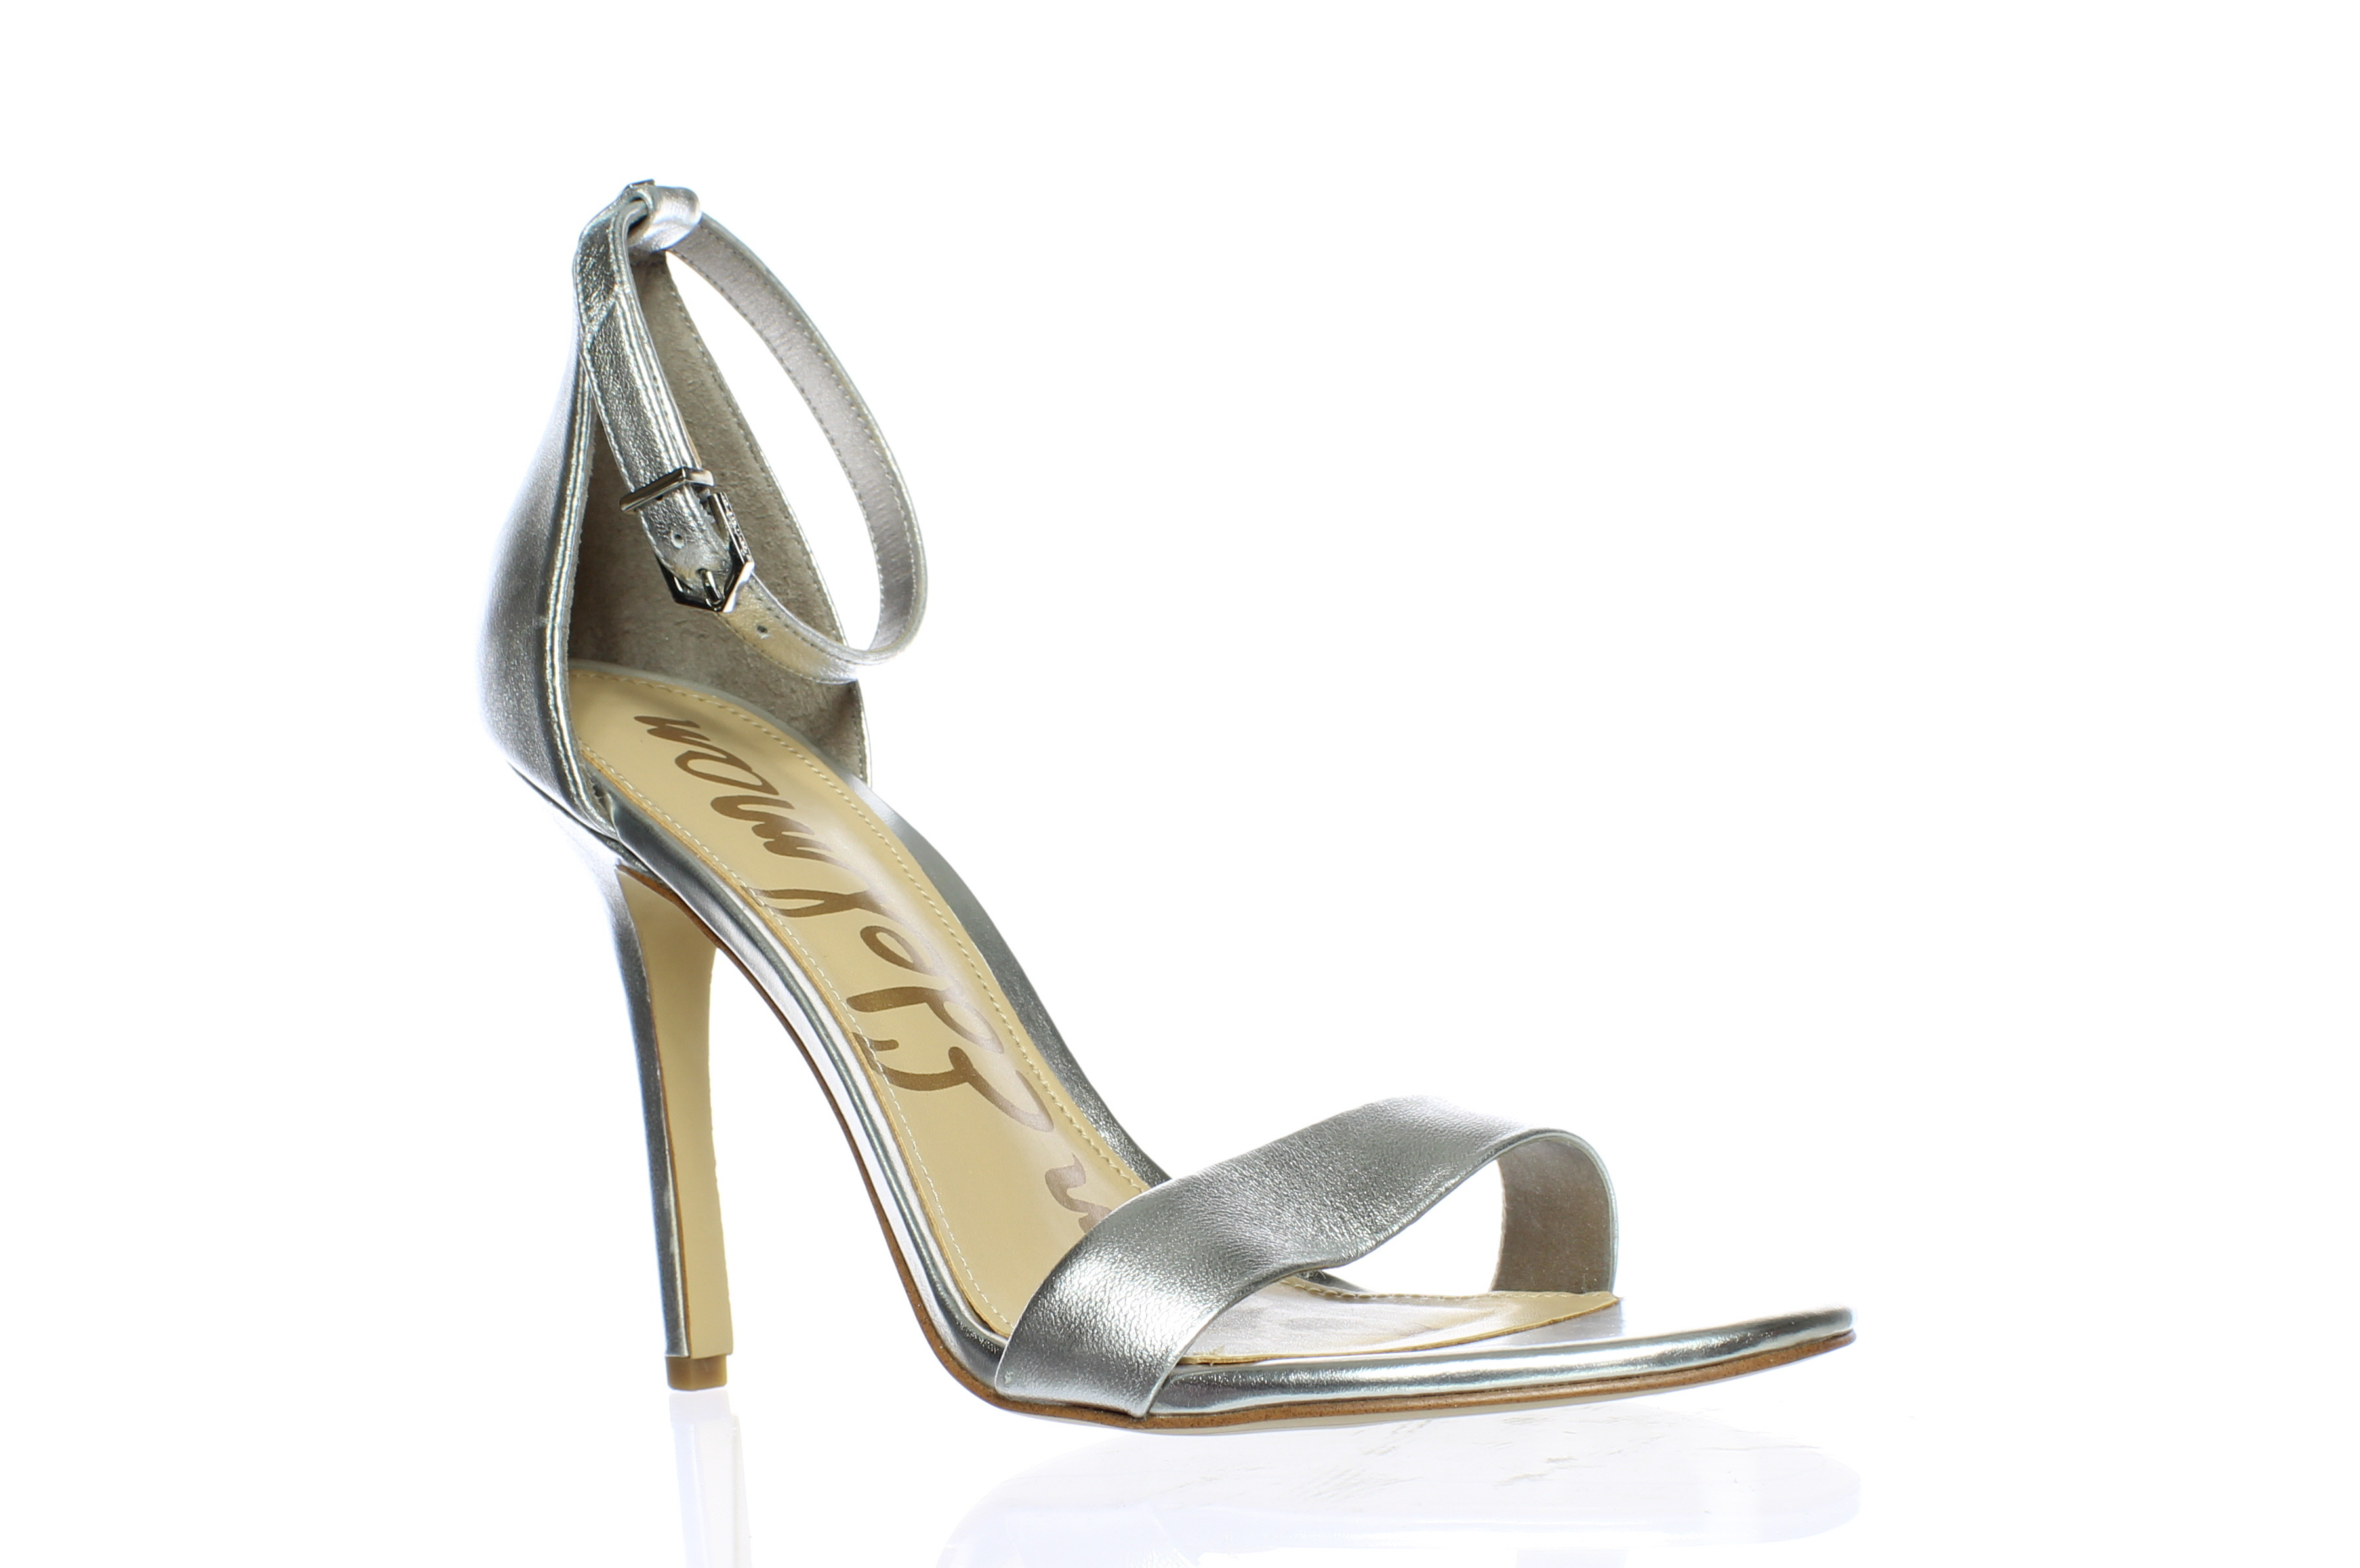 9a56ea4062cb3 Details about Sam Edelman Womens Amee Ankle Strap Heels Size 8.5 (66170)